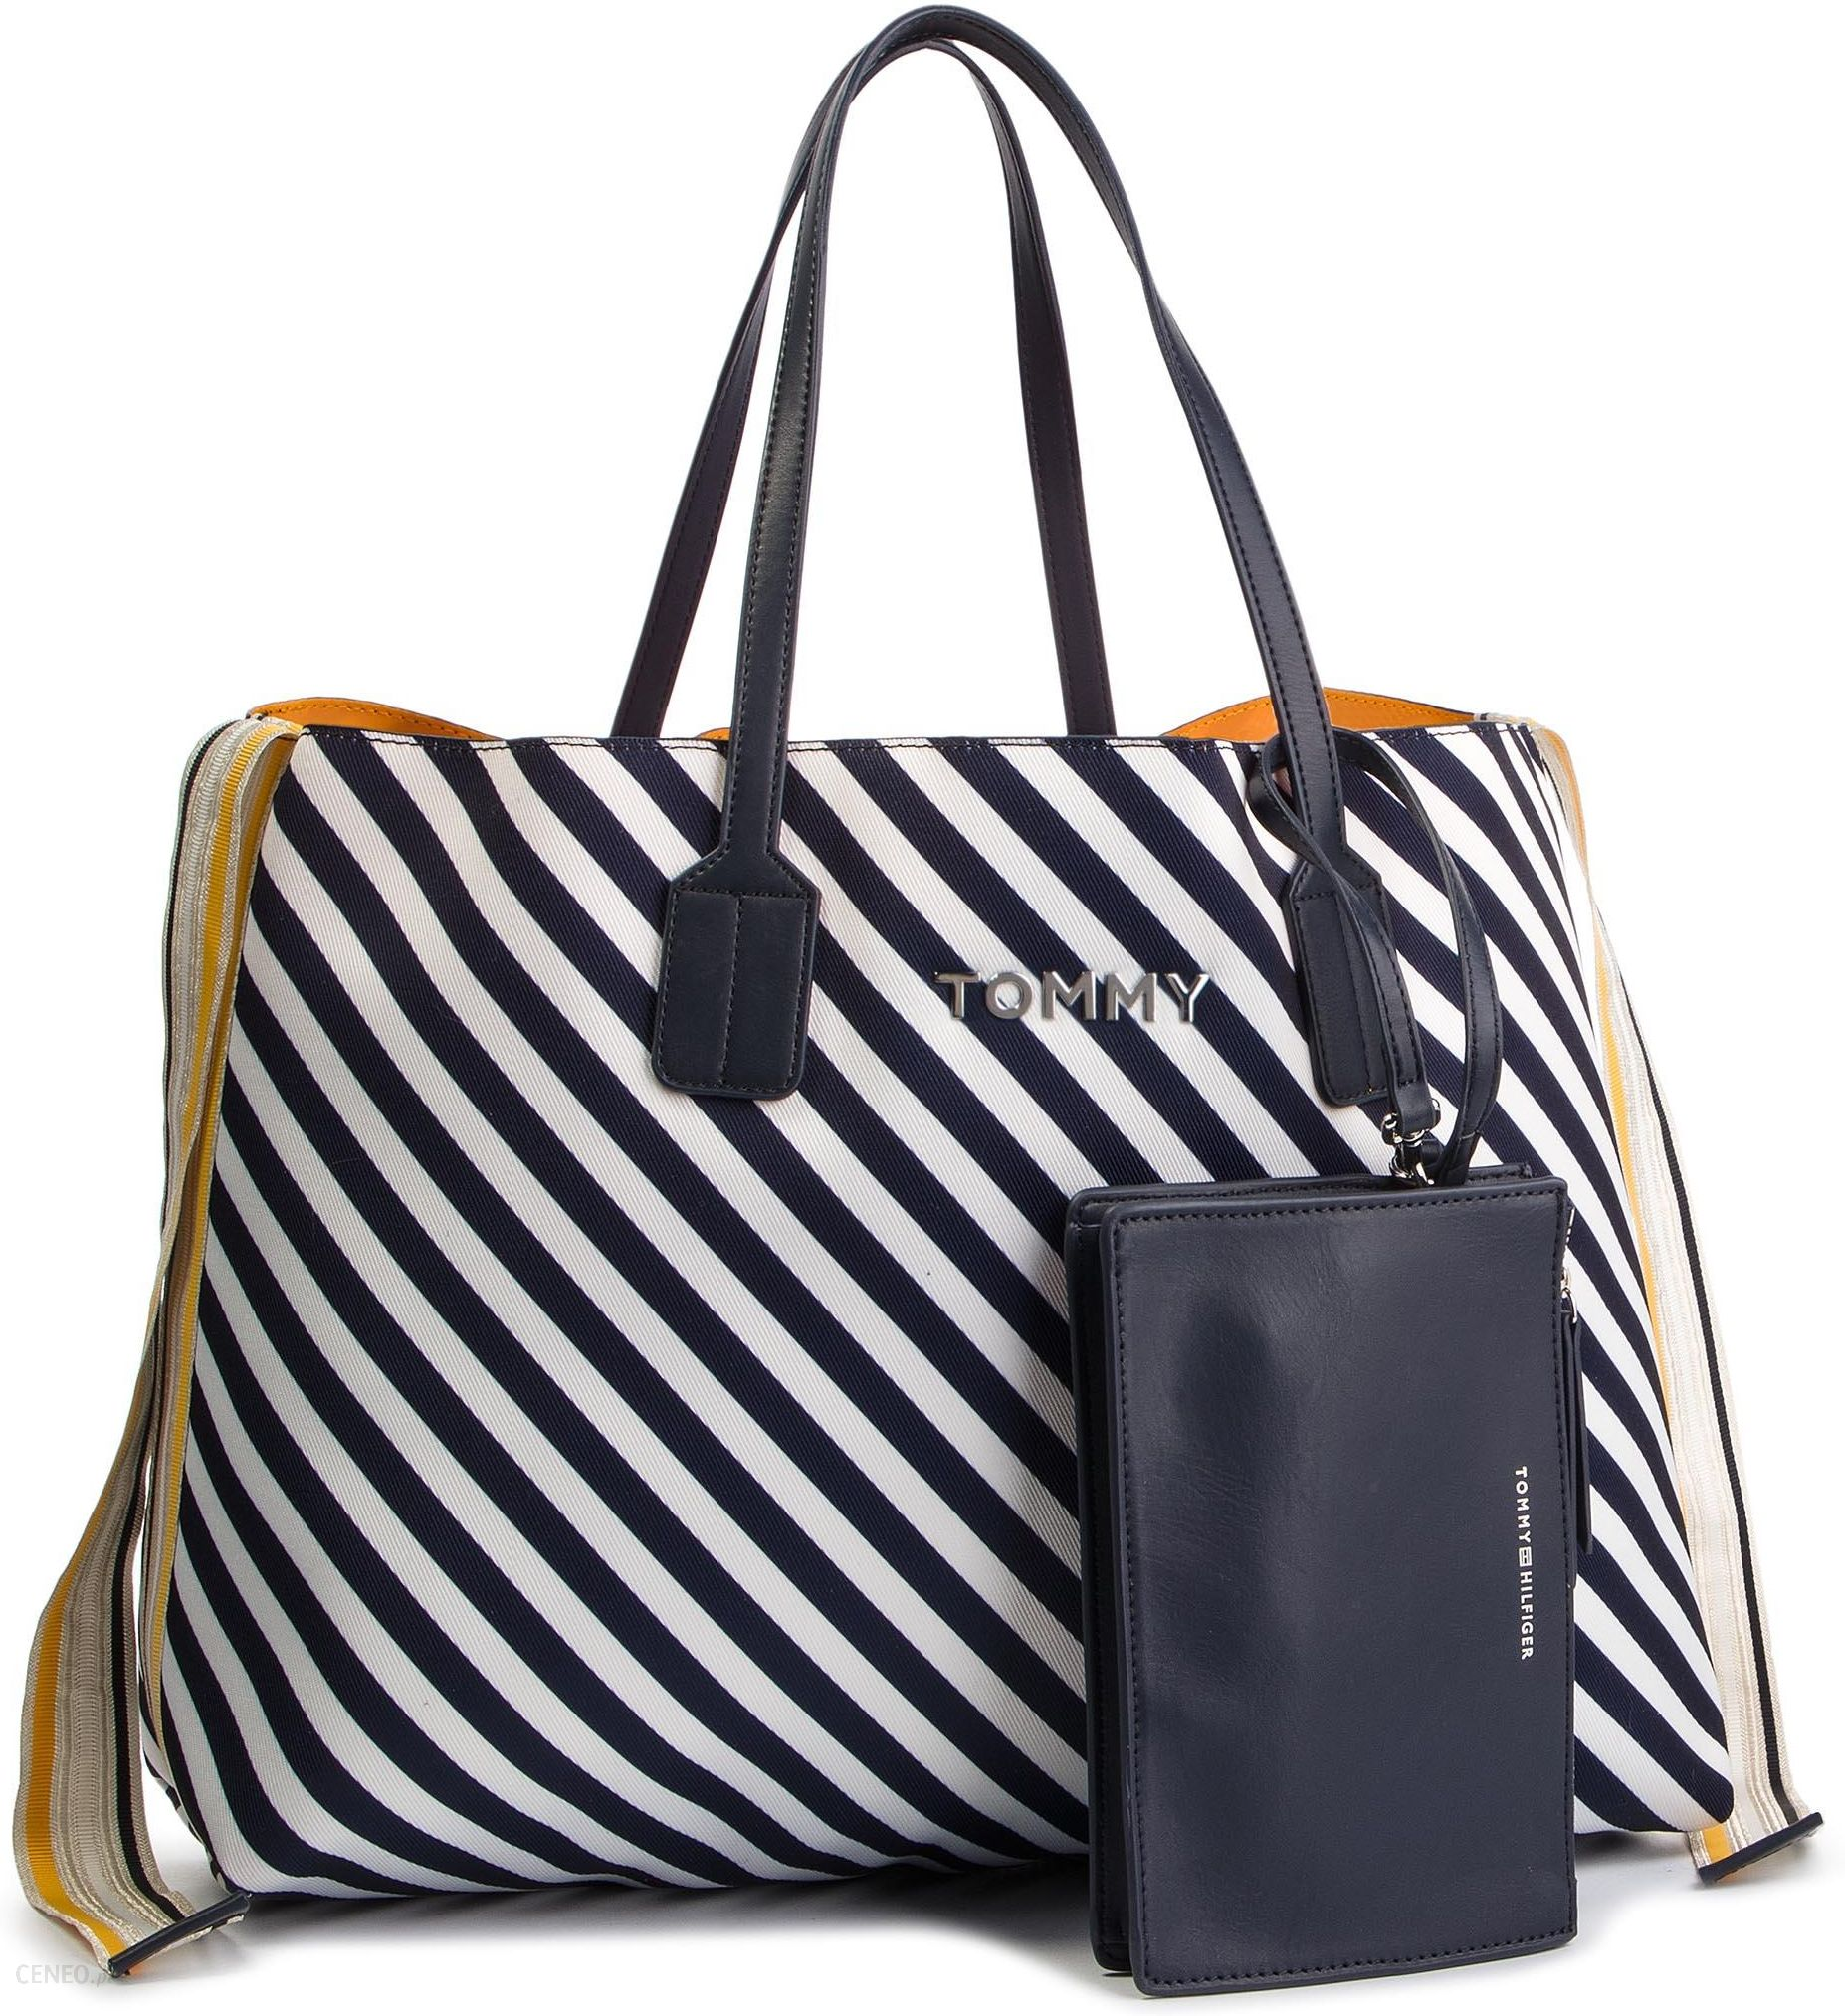 ab188ce5b9cc8 Torebka TOMMY HILFIGER - Cool Tommy Tote AW0AW06269 902 - Ceny i ...